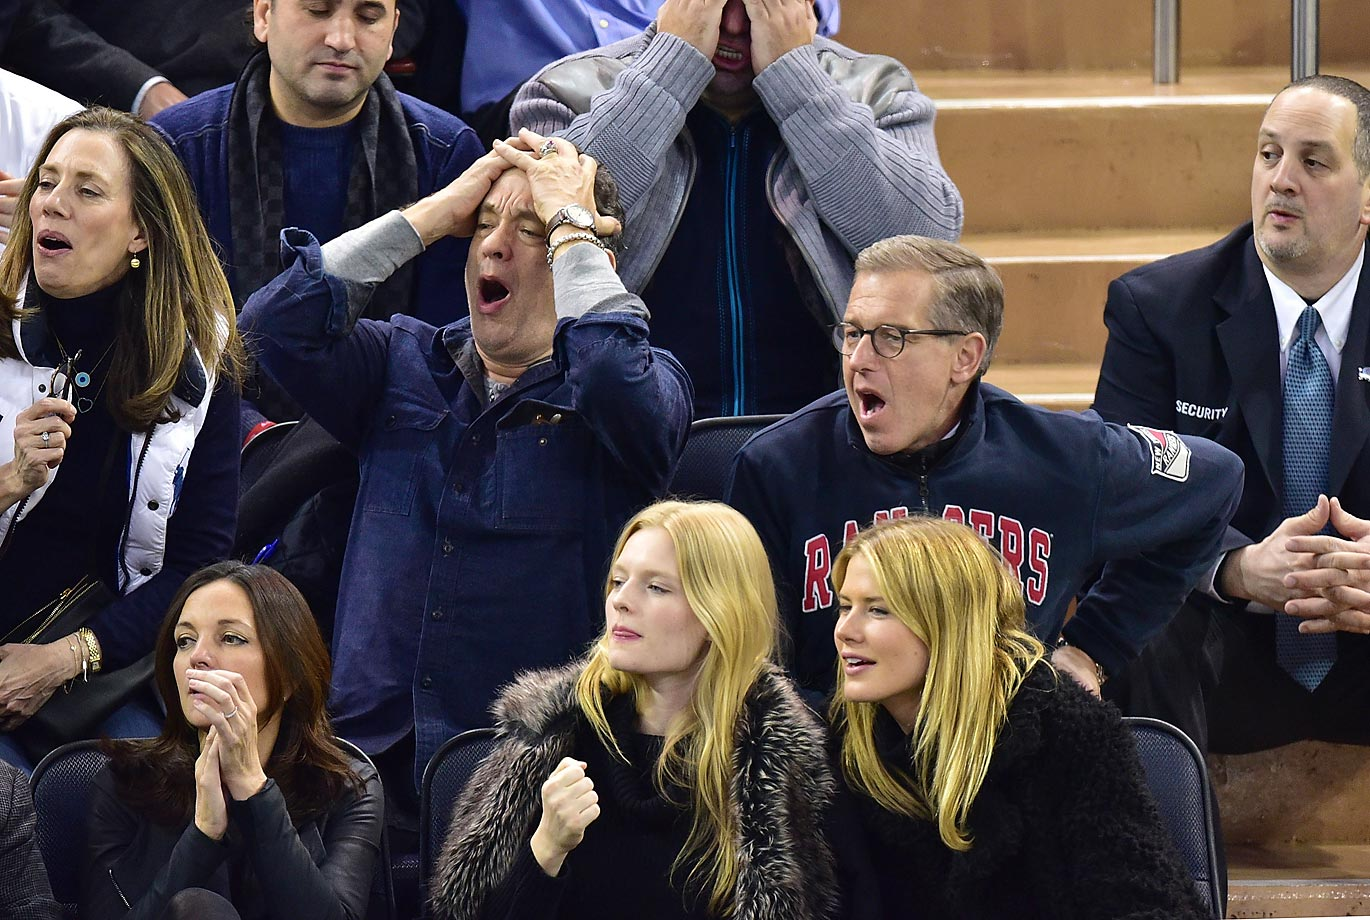 Brian Williams really did attend the Rangers game with Tom Hanks… The Rangers beat the Bruins 3-2.